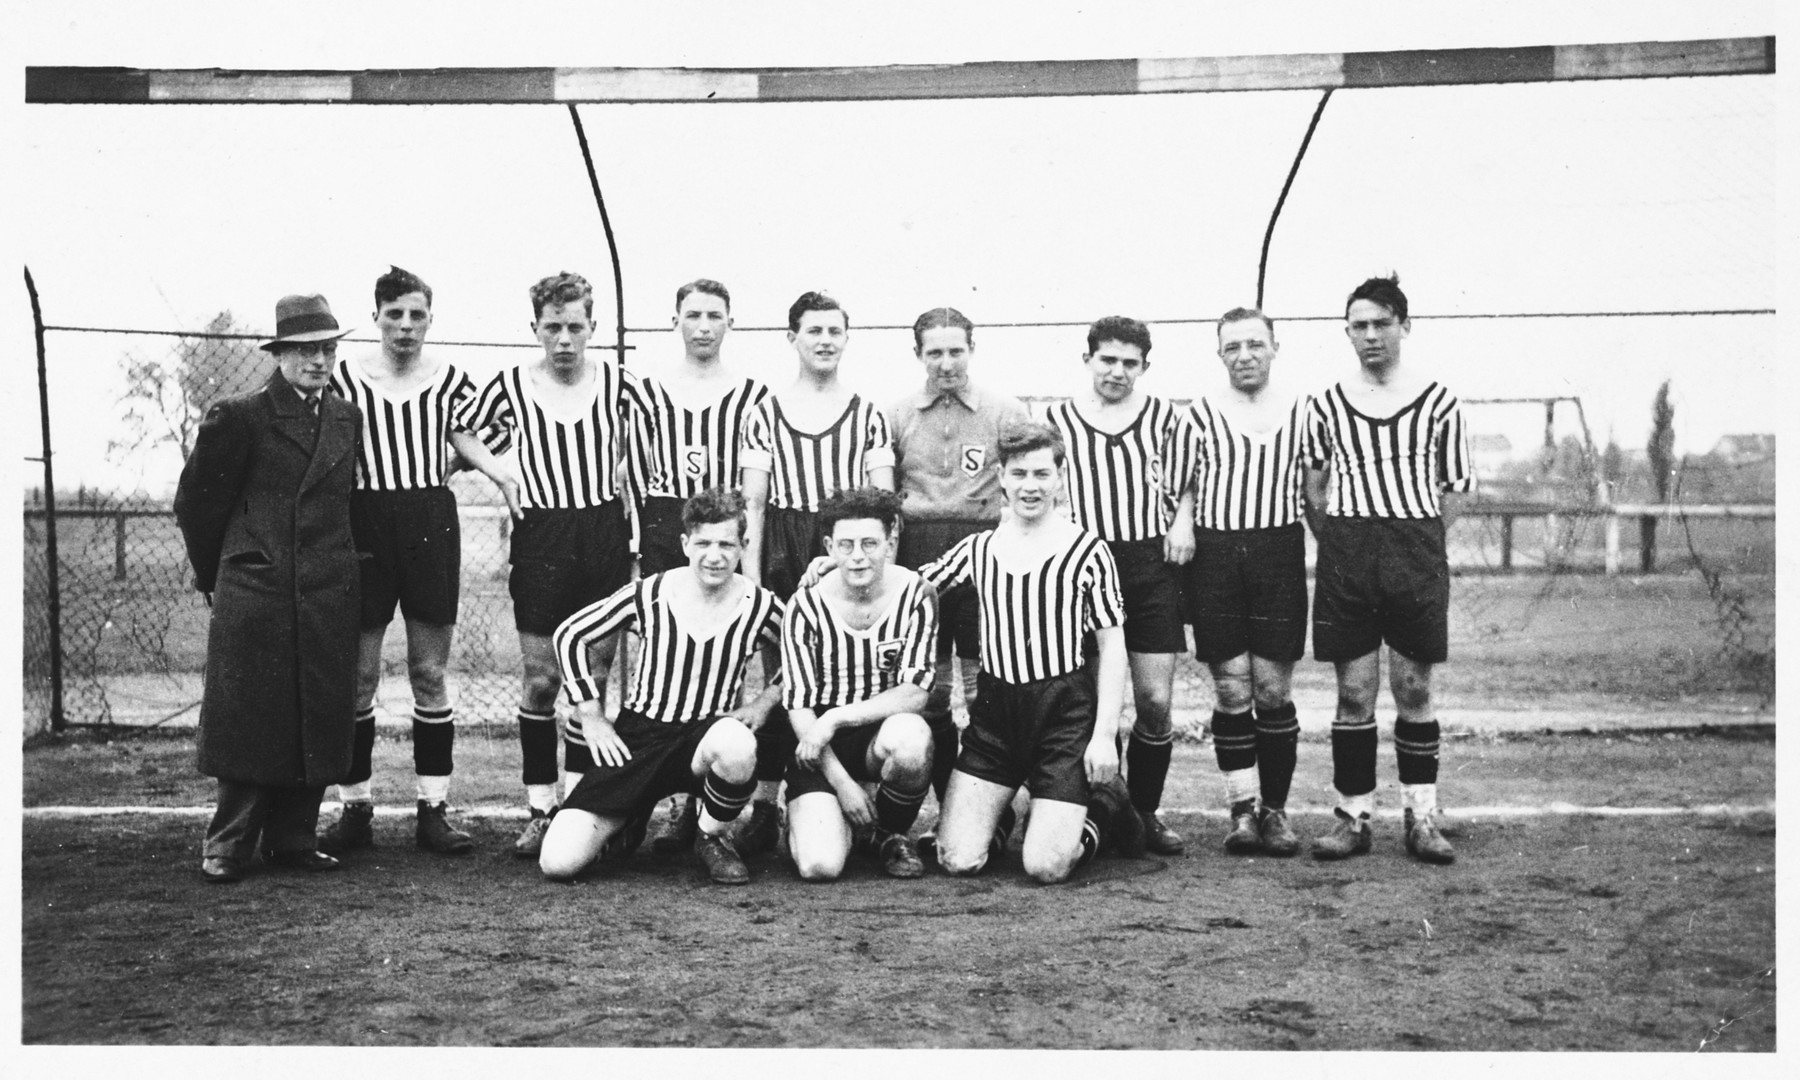 Group portrait of the members of a German-Jewish soccer team.